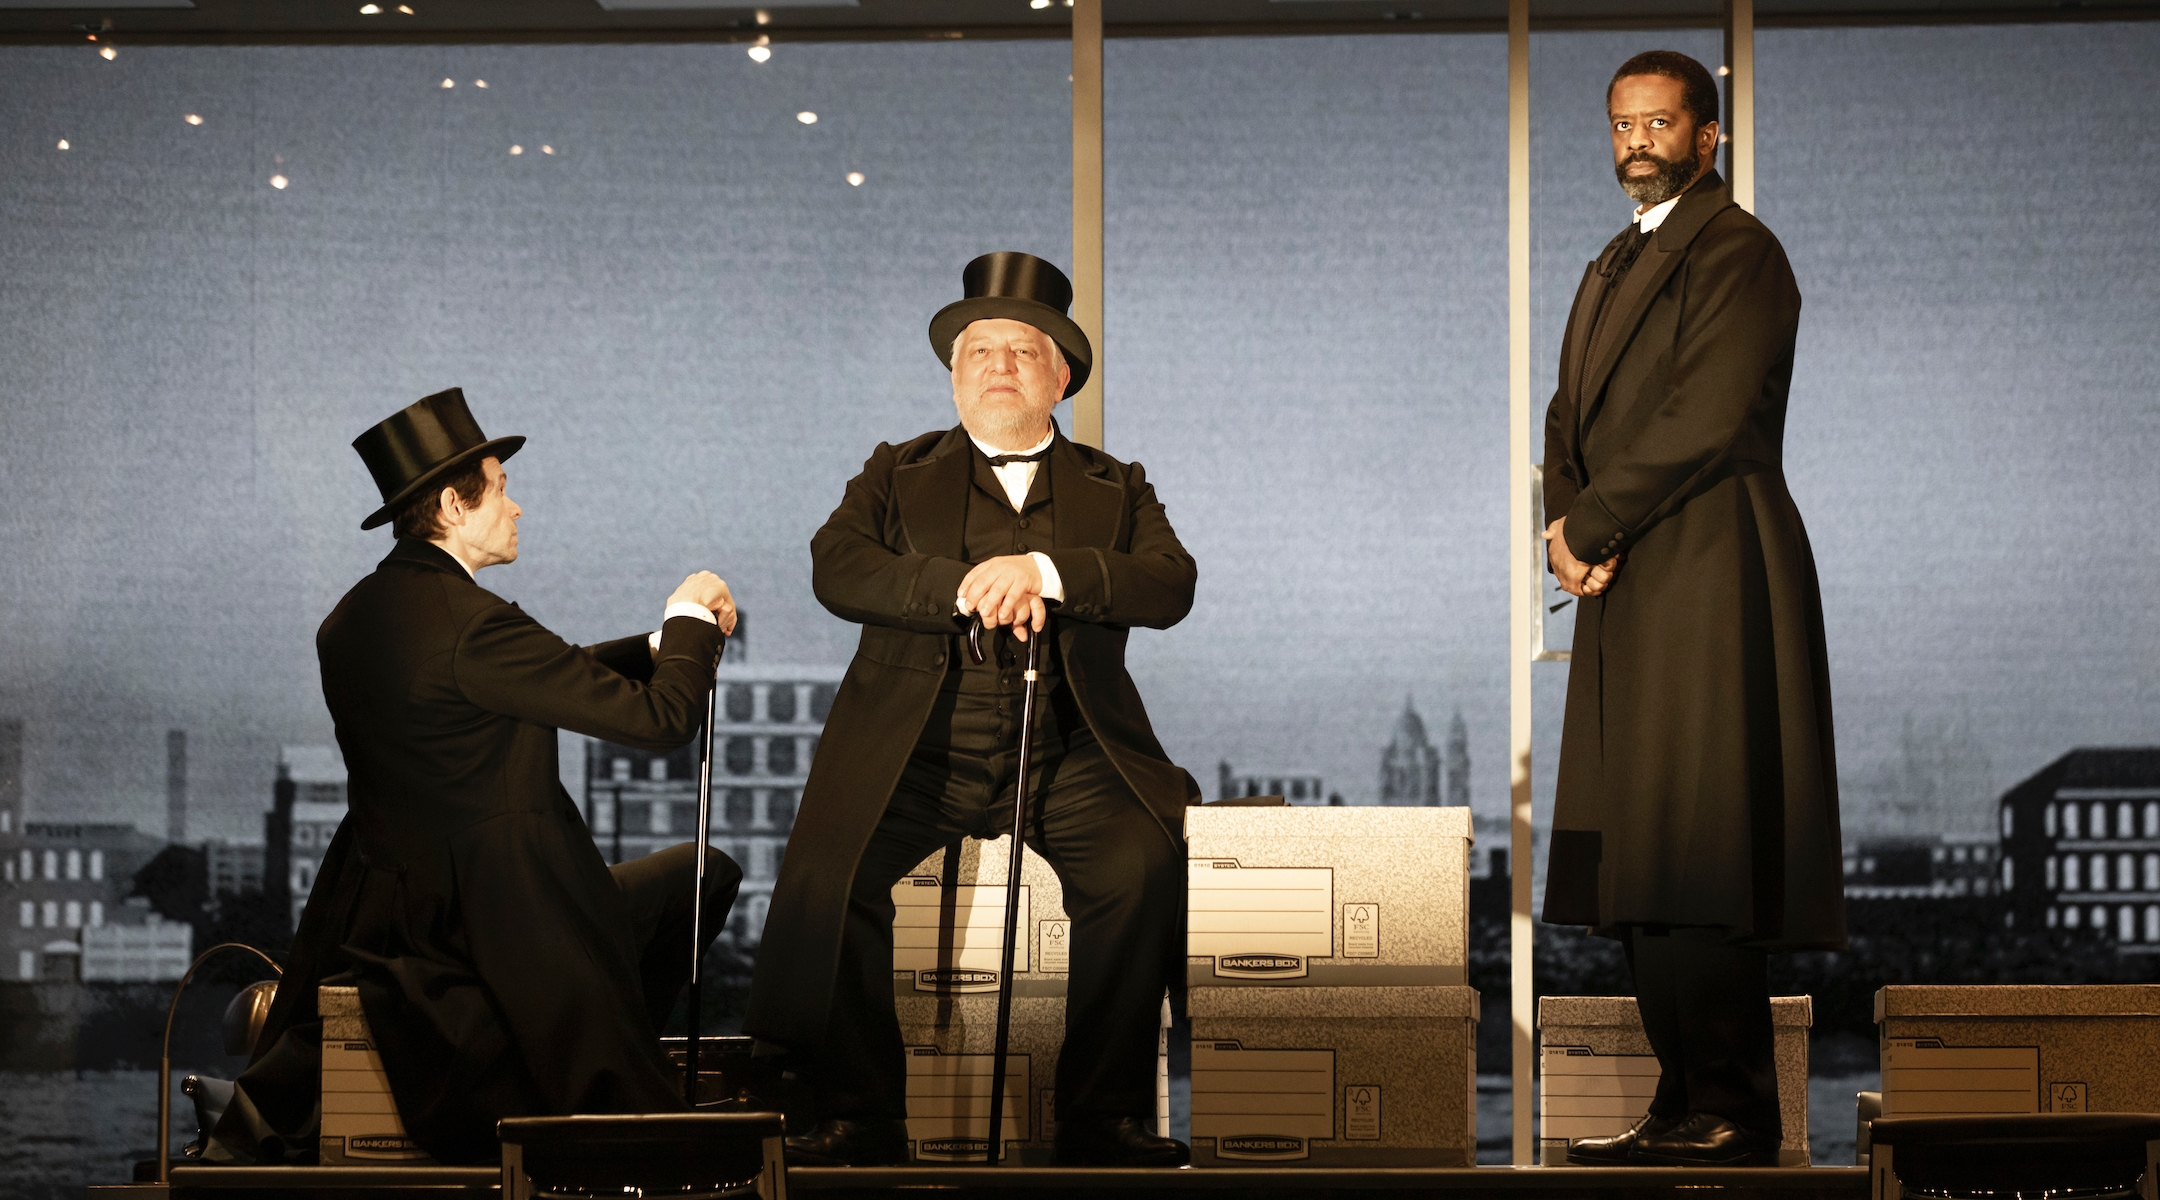 As Broadway returns, here are 7 Jewish reasons to head back to the theater